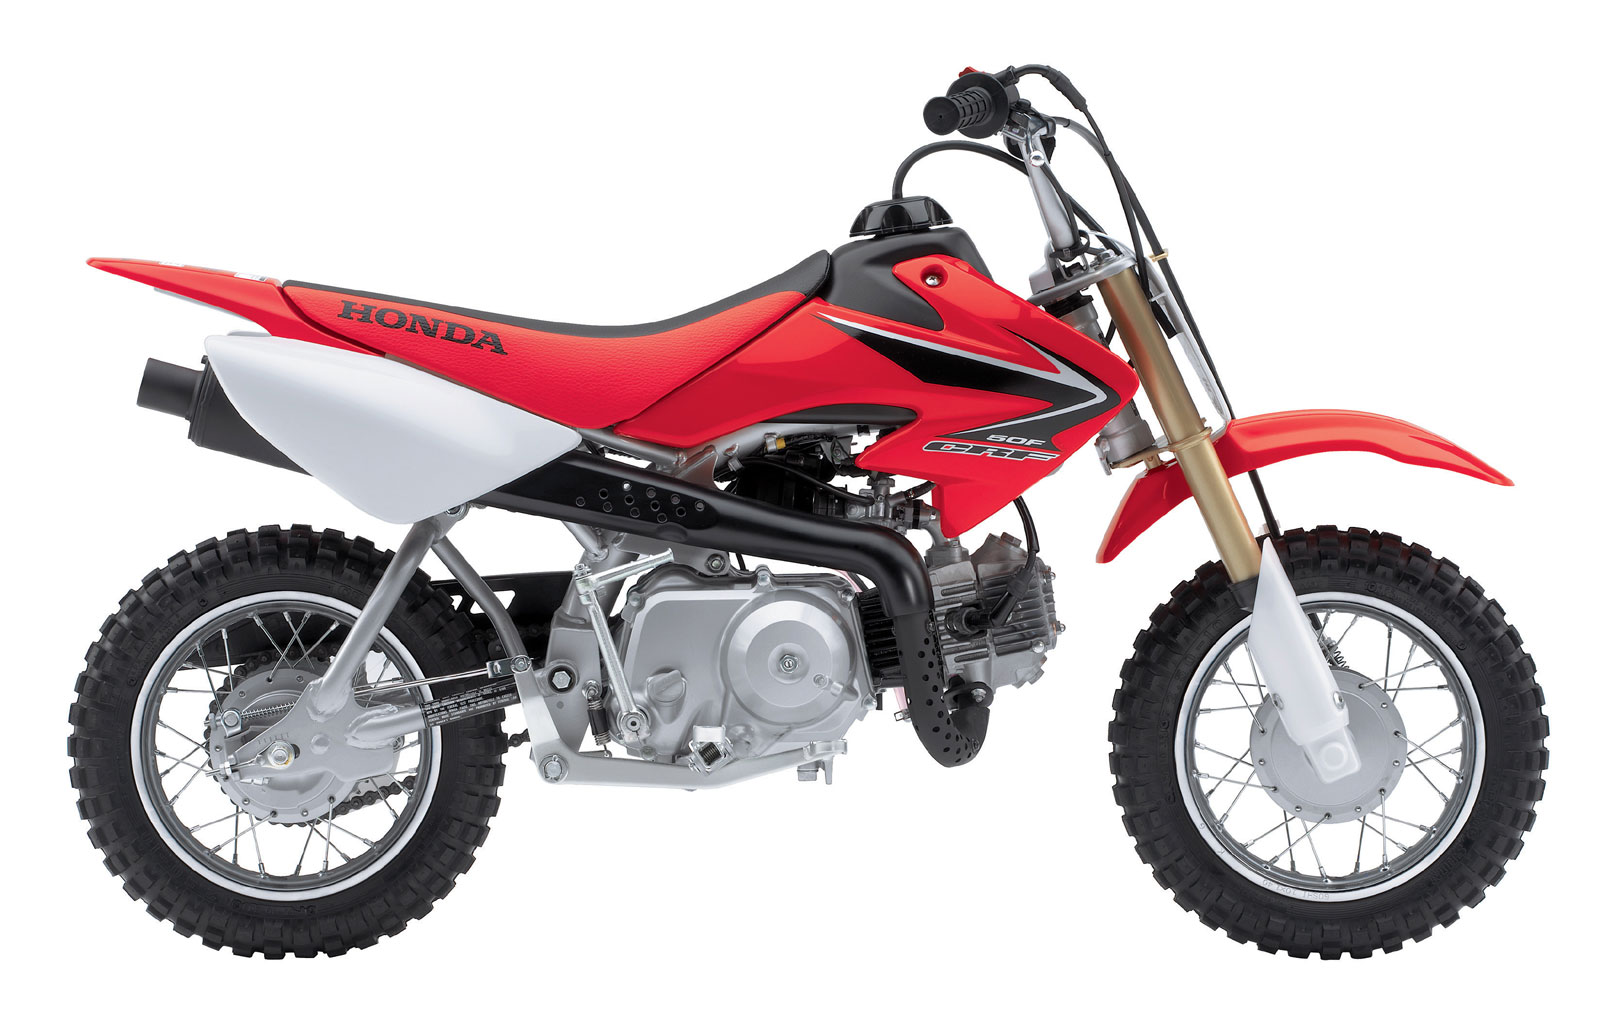 name forums version click parts atv size image forum larger sale for views honda